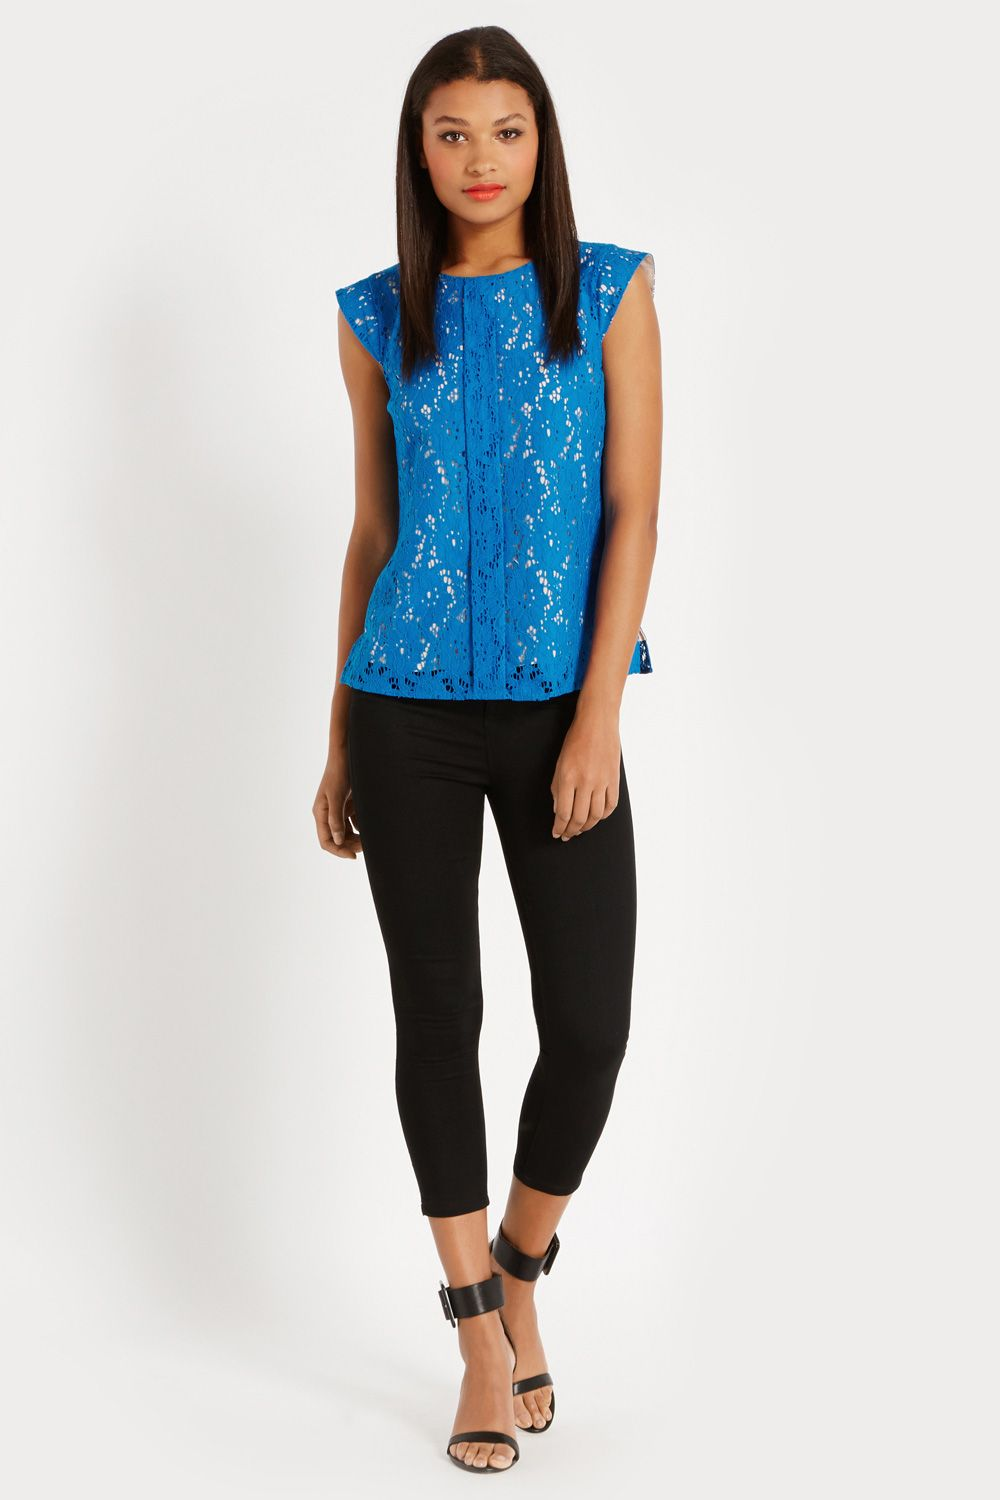 Pintuck lace top